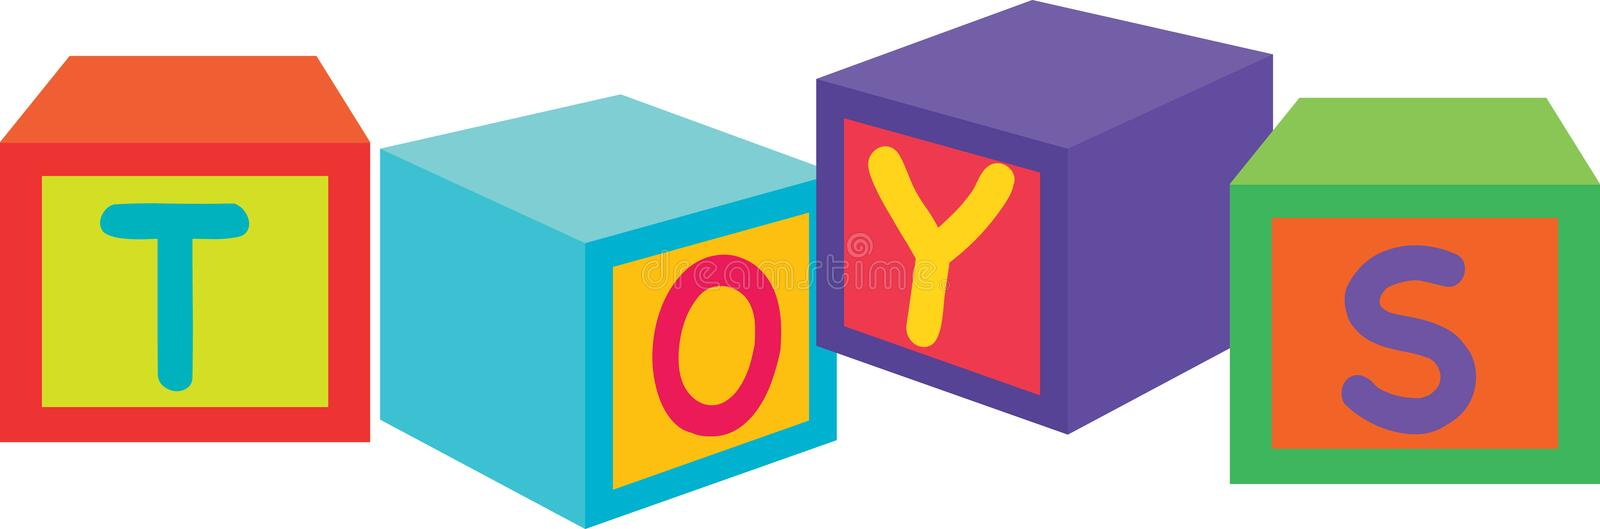 blocktoys stock illustrationer